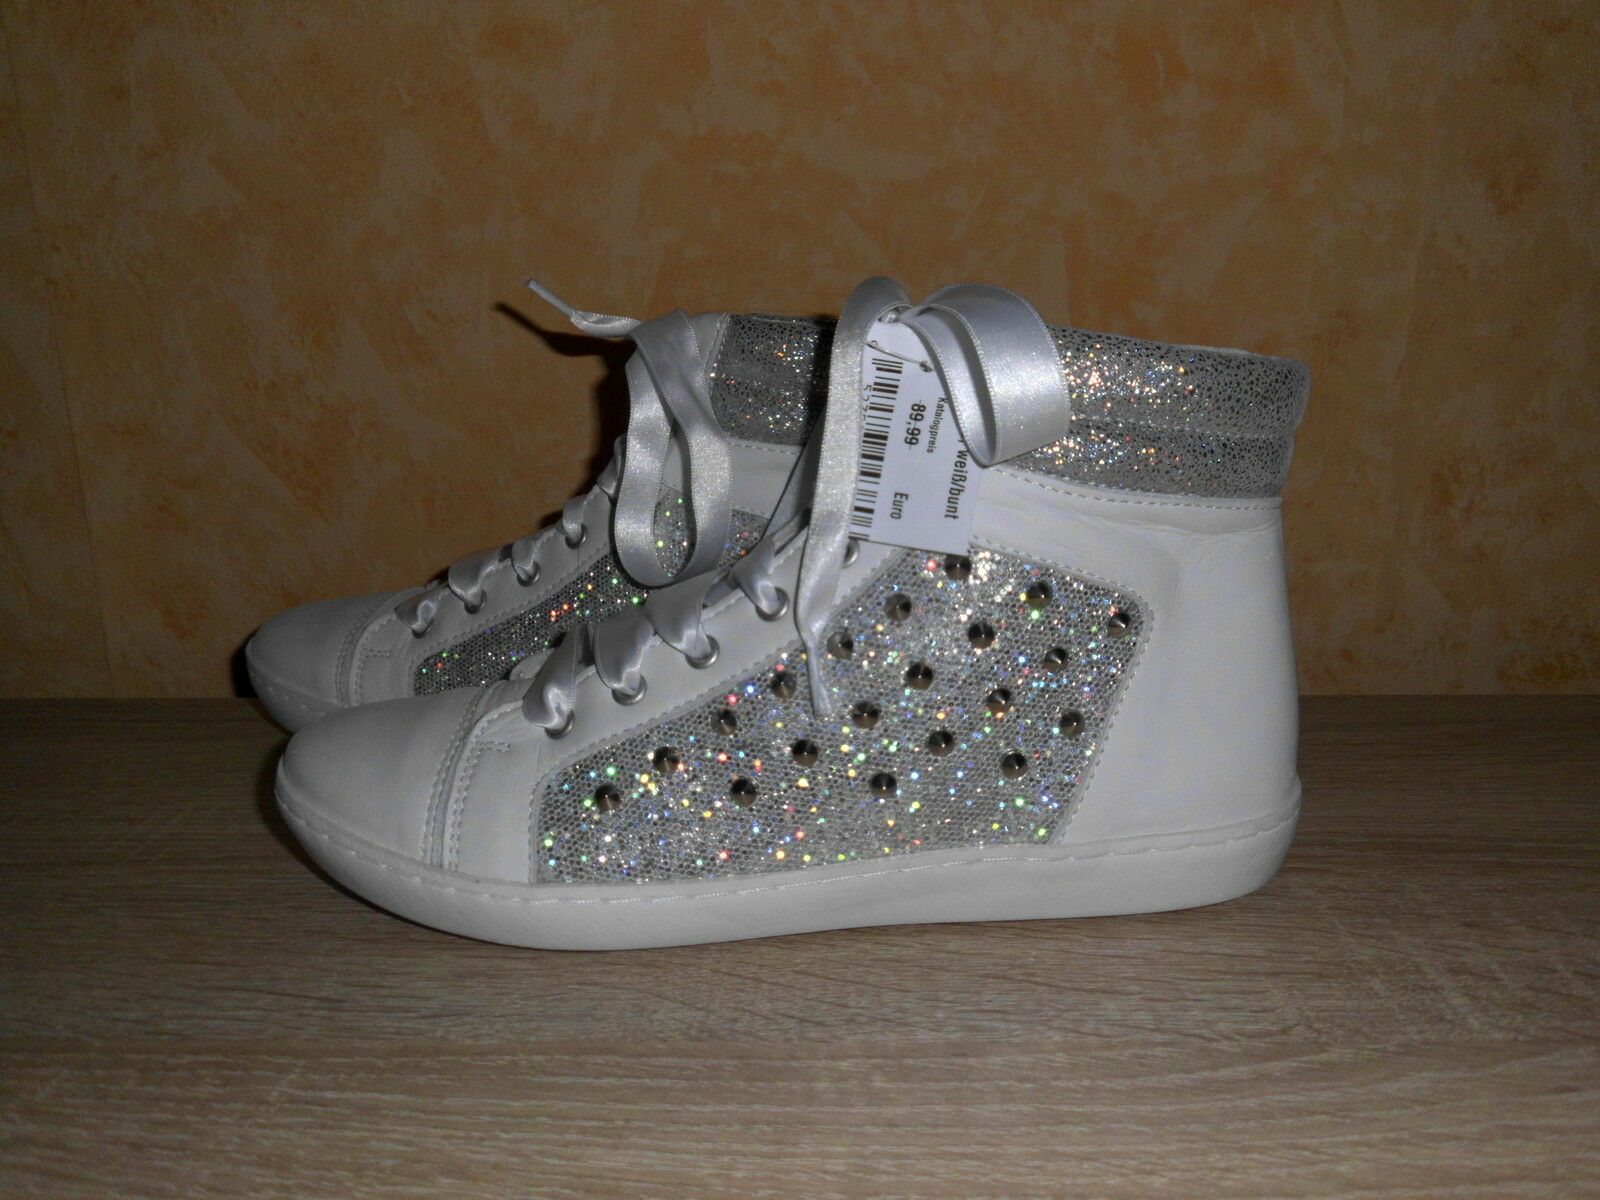 Lace-Up Trainers Running shoes of LIVA Loop New Size 38 in White Leather & Studs